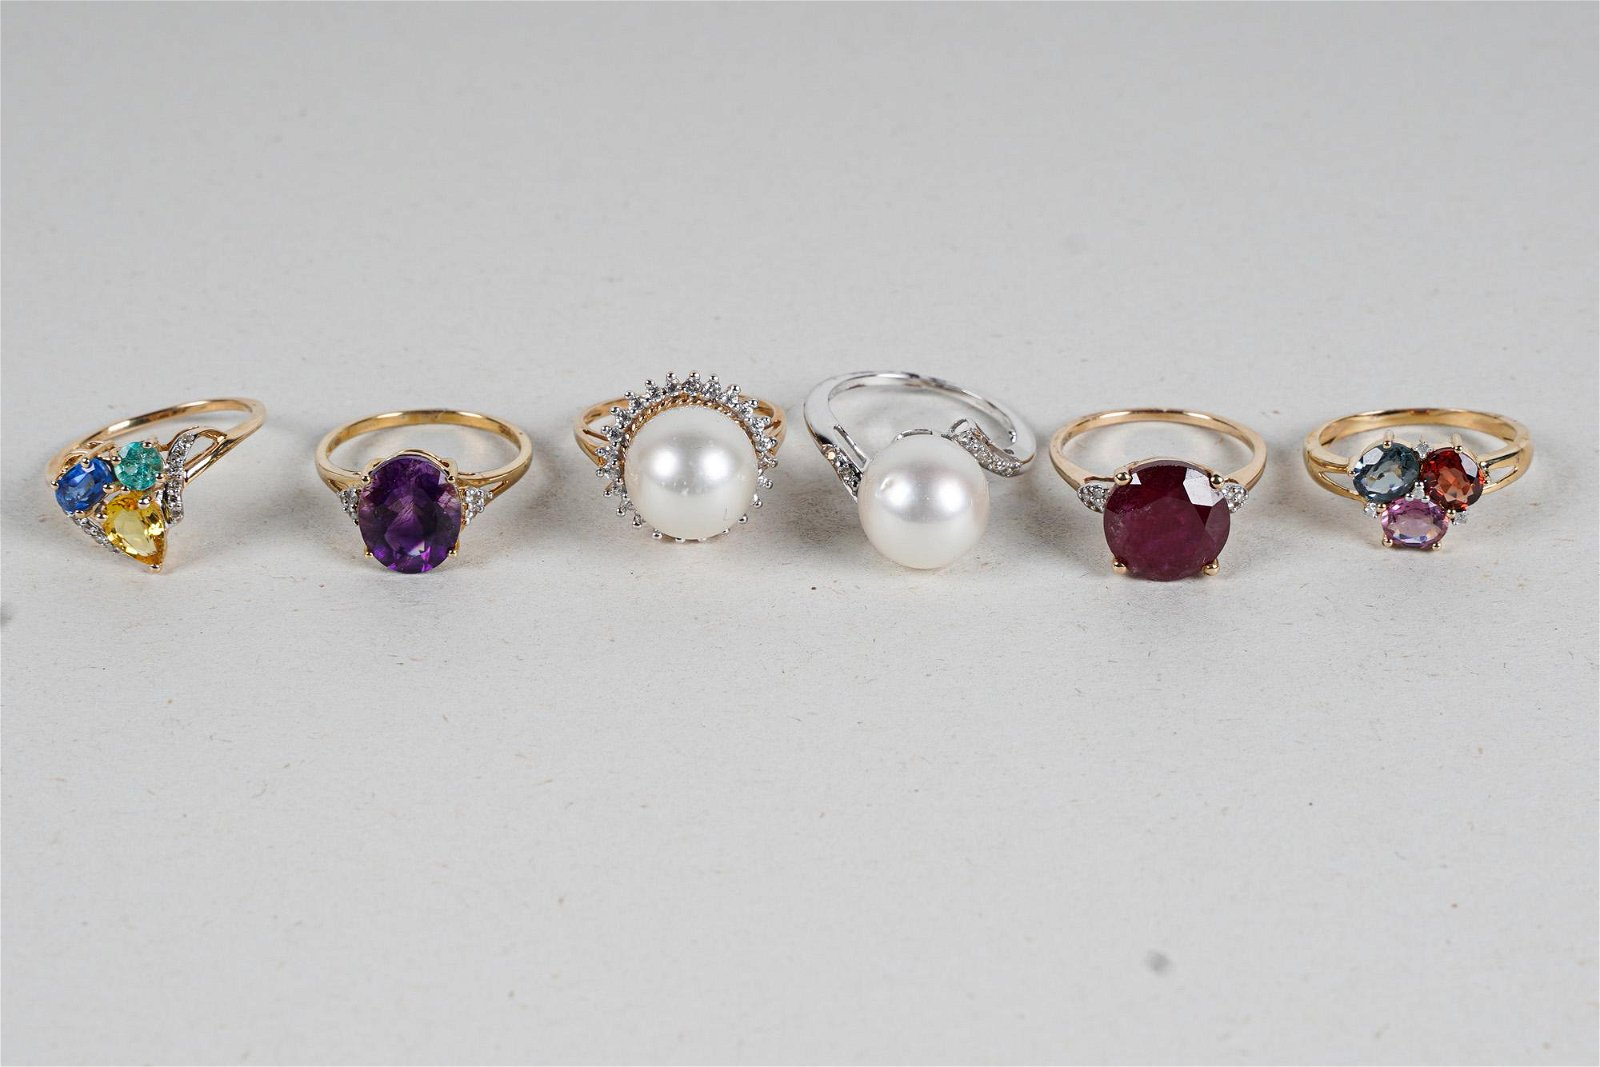 SIX ASSORTED 10 KARAT YELLOW GOLD RINGS